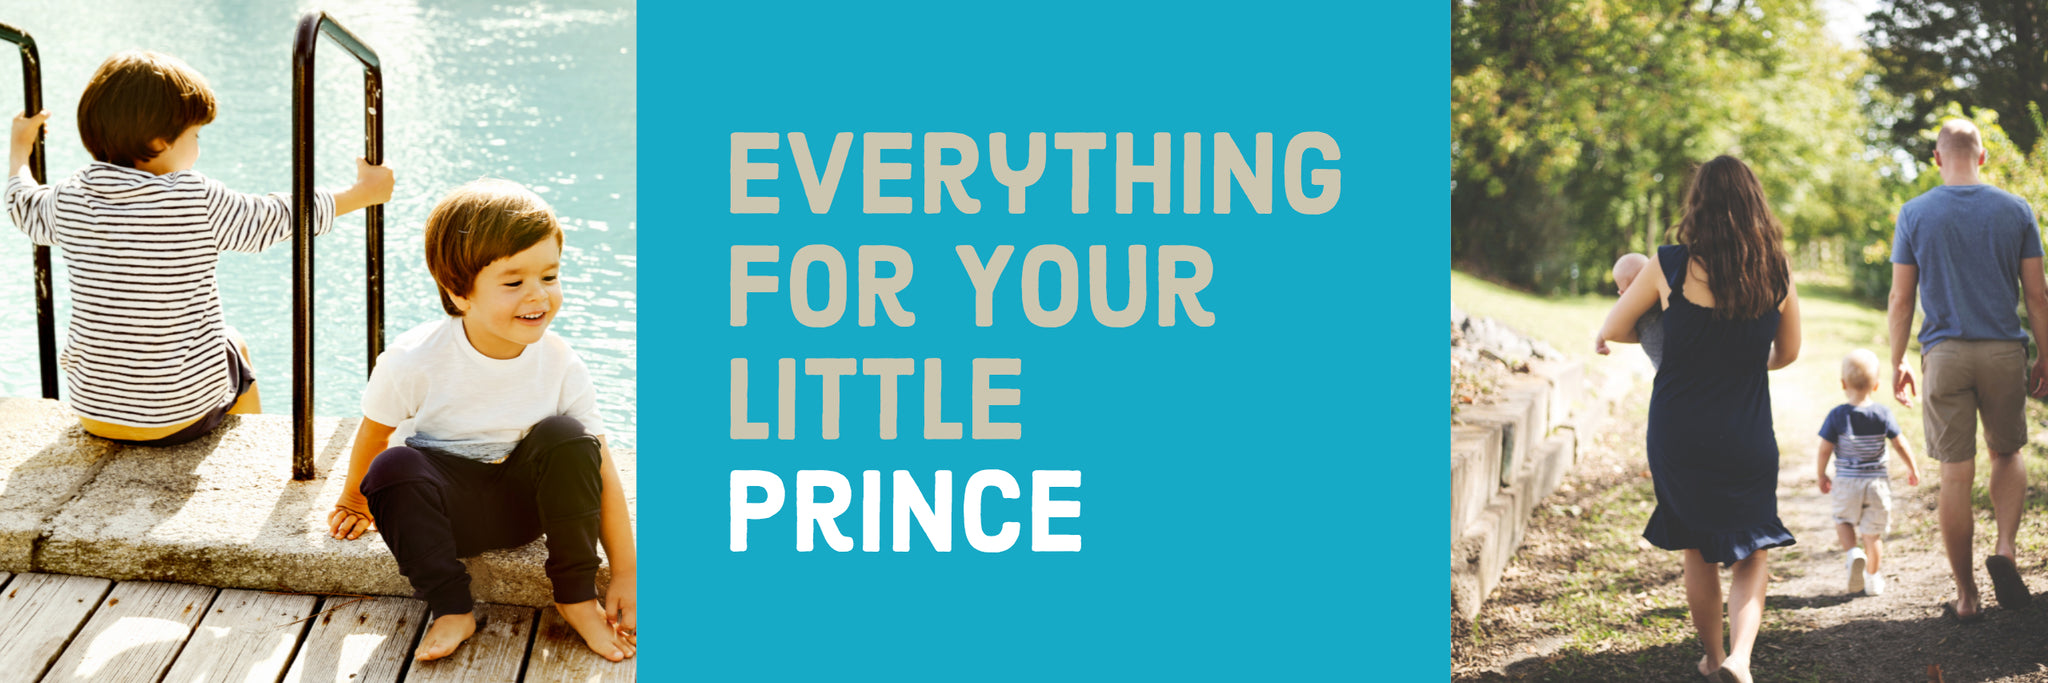 Boys Collection Image; Everything For Your Prince